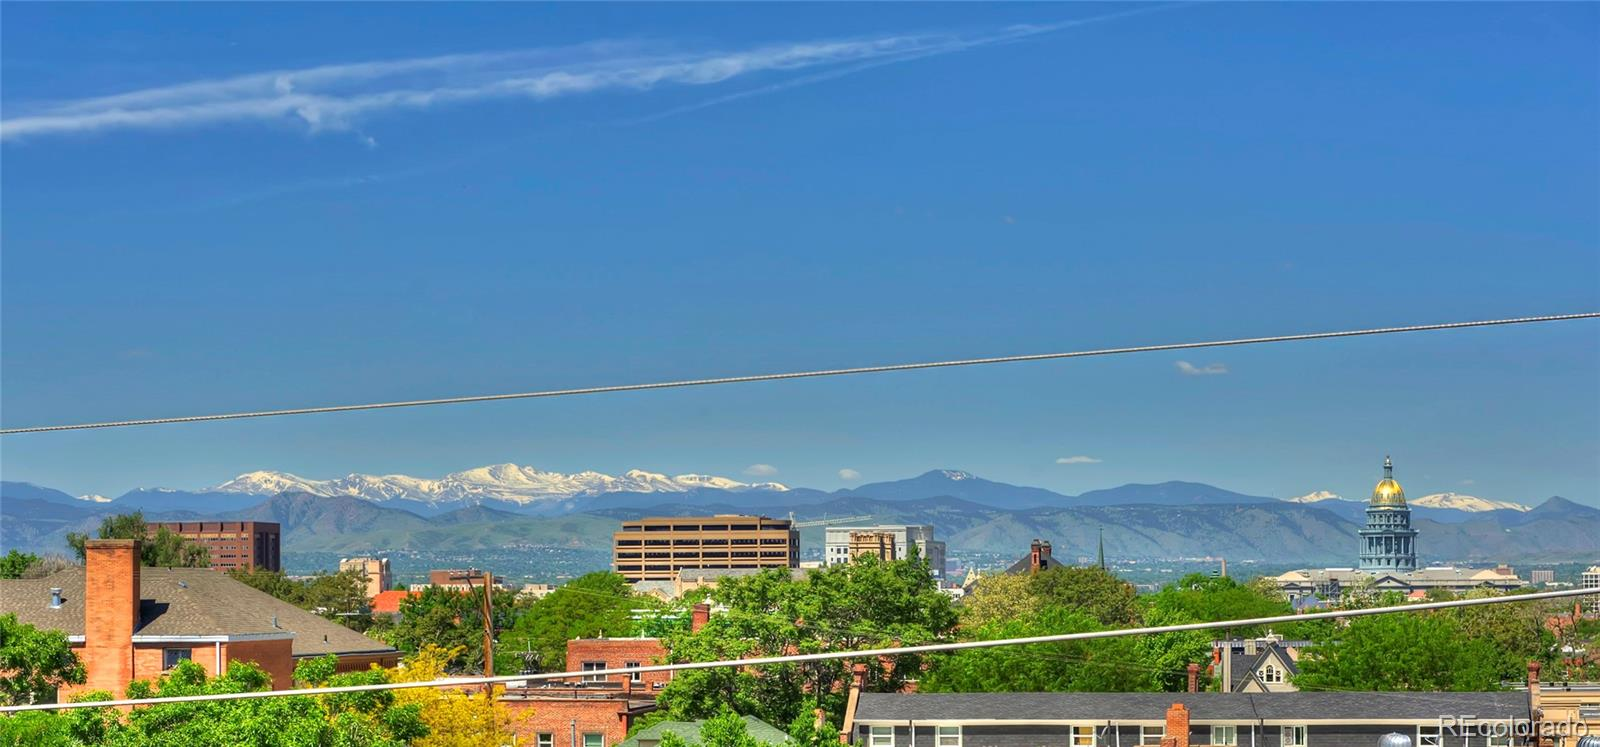 MLS# 8662083 - 6 - 1441 N Humboldt Street #407, Denver, CO 80218